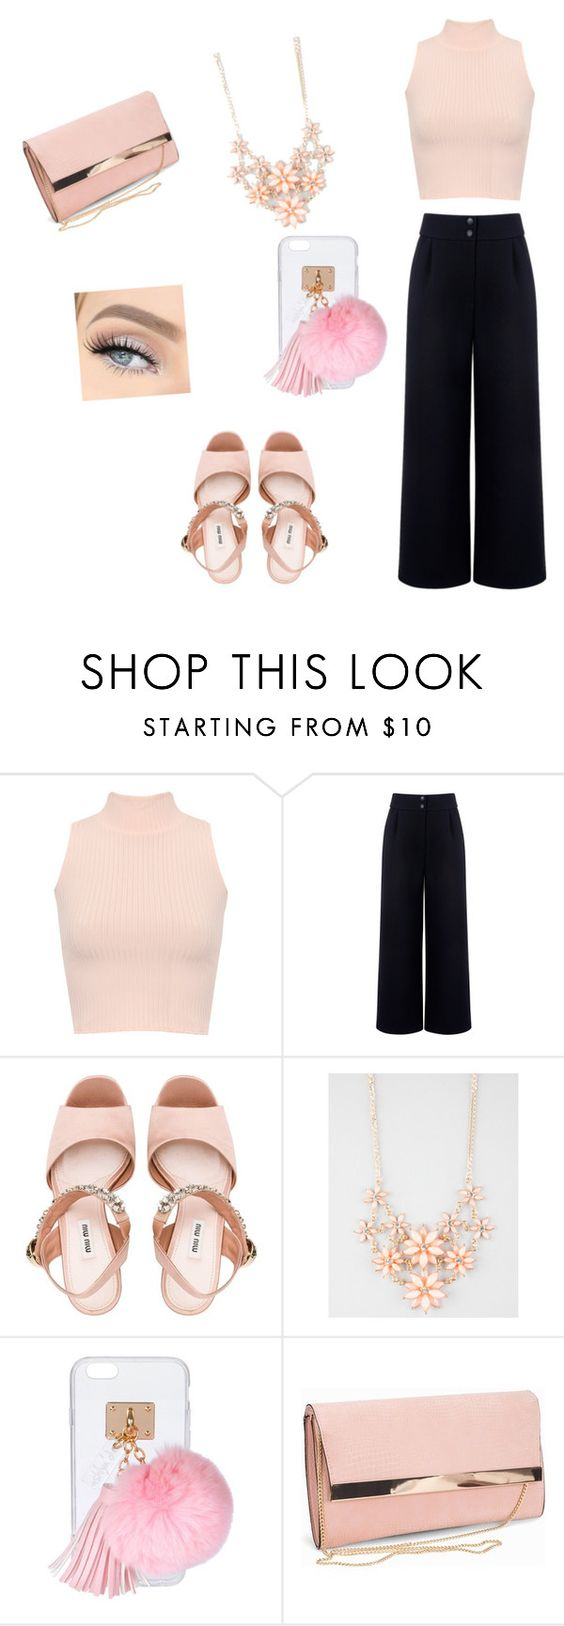 """""""Untitled #150"""" by royal08 ❤ liked on Polyvore featuring WearAll, Être Cécile, Miu Miu, Full Tilt, Ashlyn'd and New Look"""